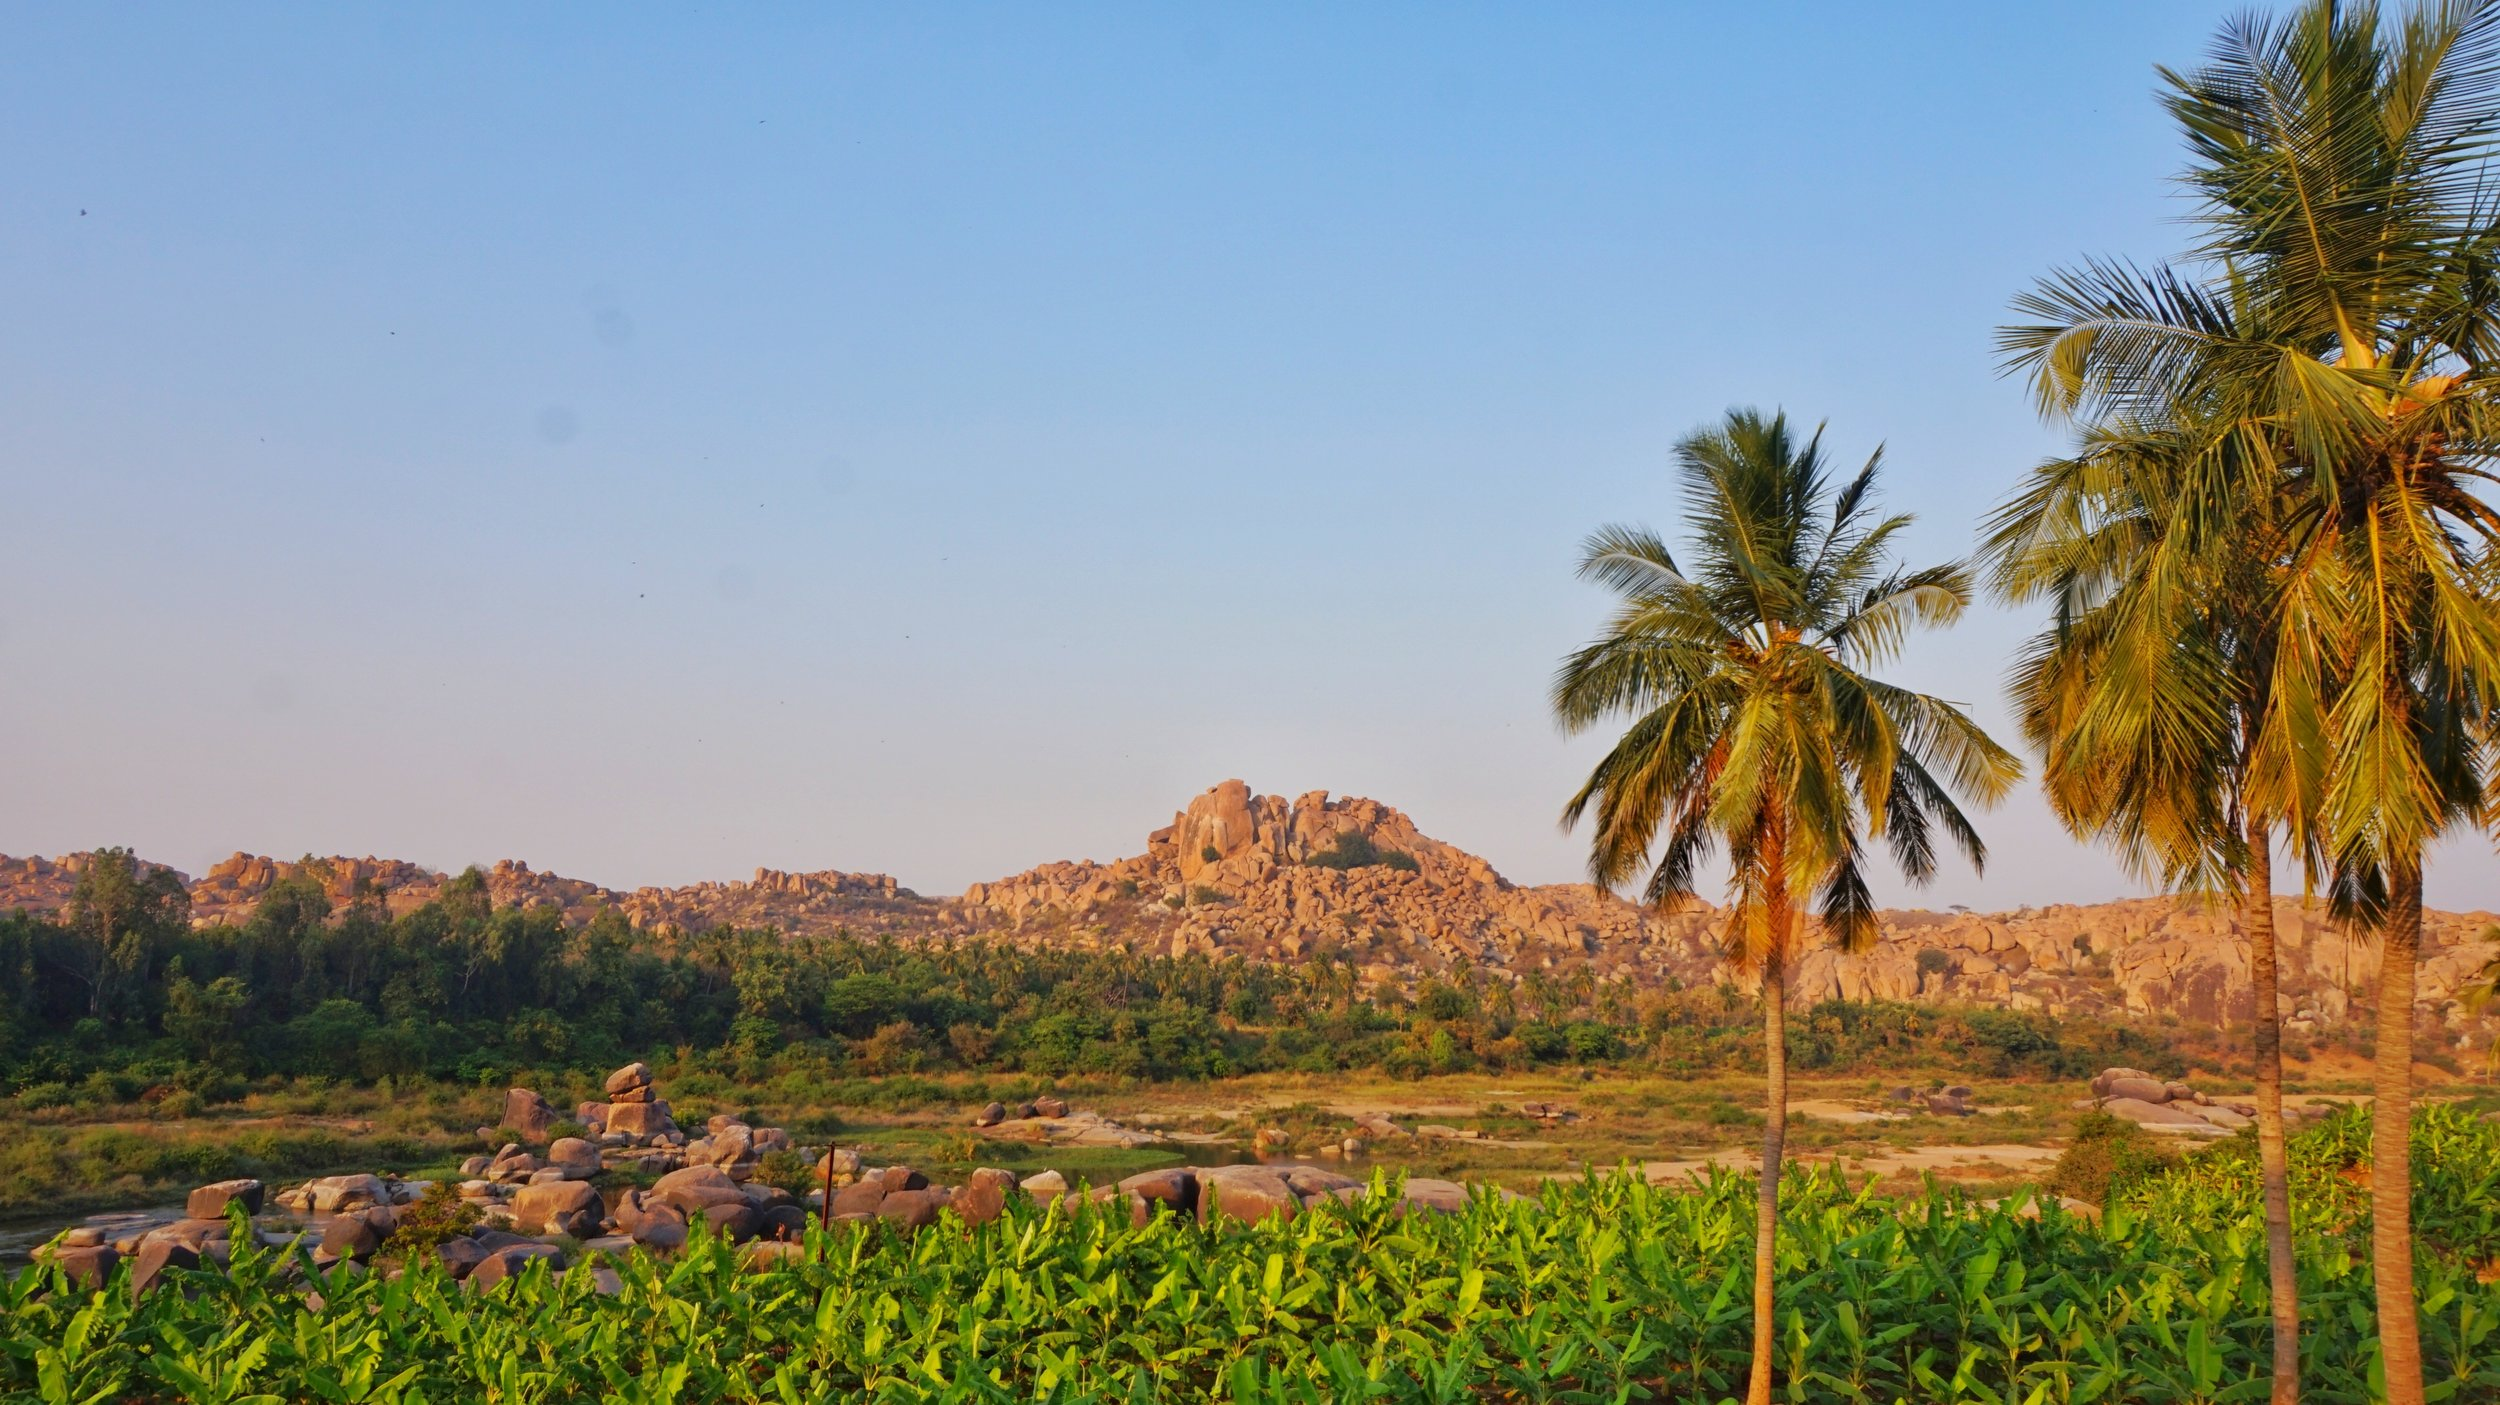 There are plenty of things to do in Hampi! The ruins around this area are some of the most significant in India and therefore one of the best places to visit in Hampi.